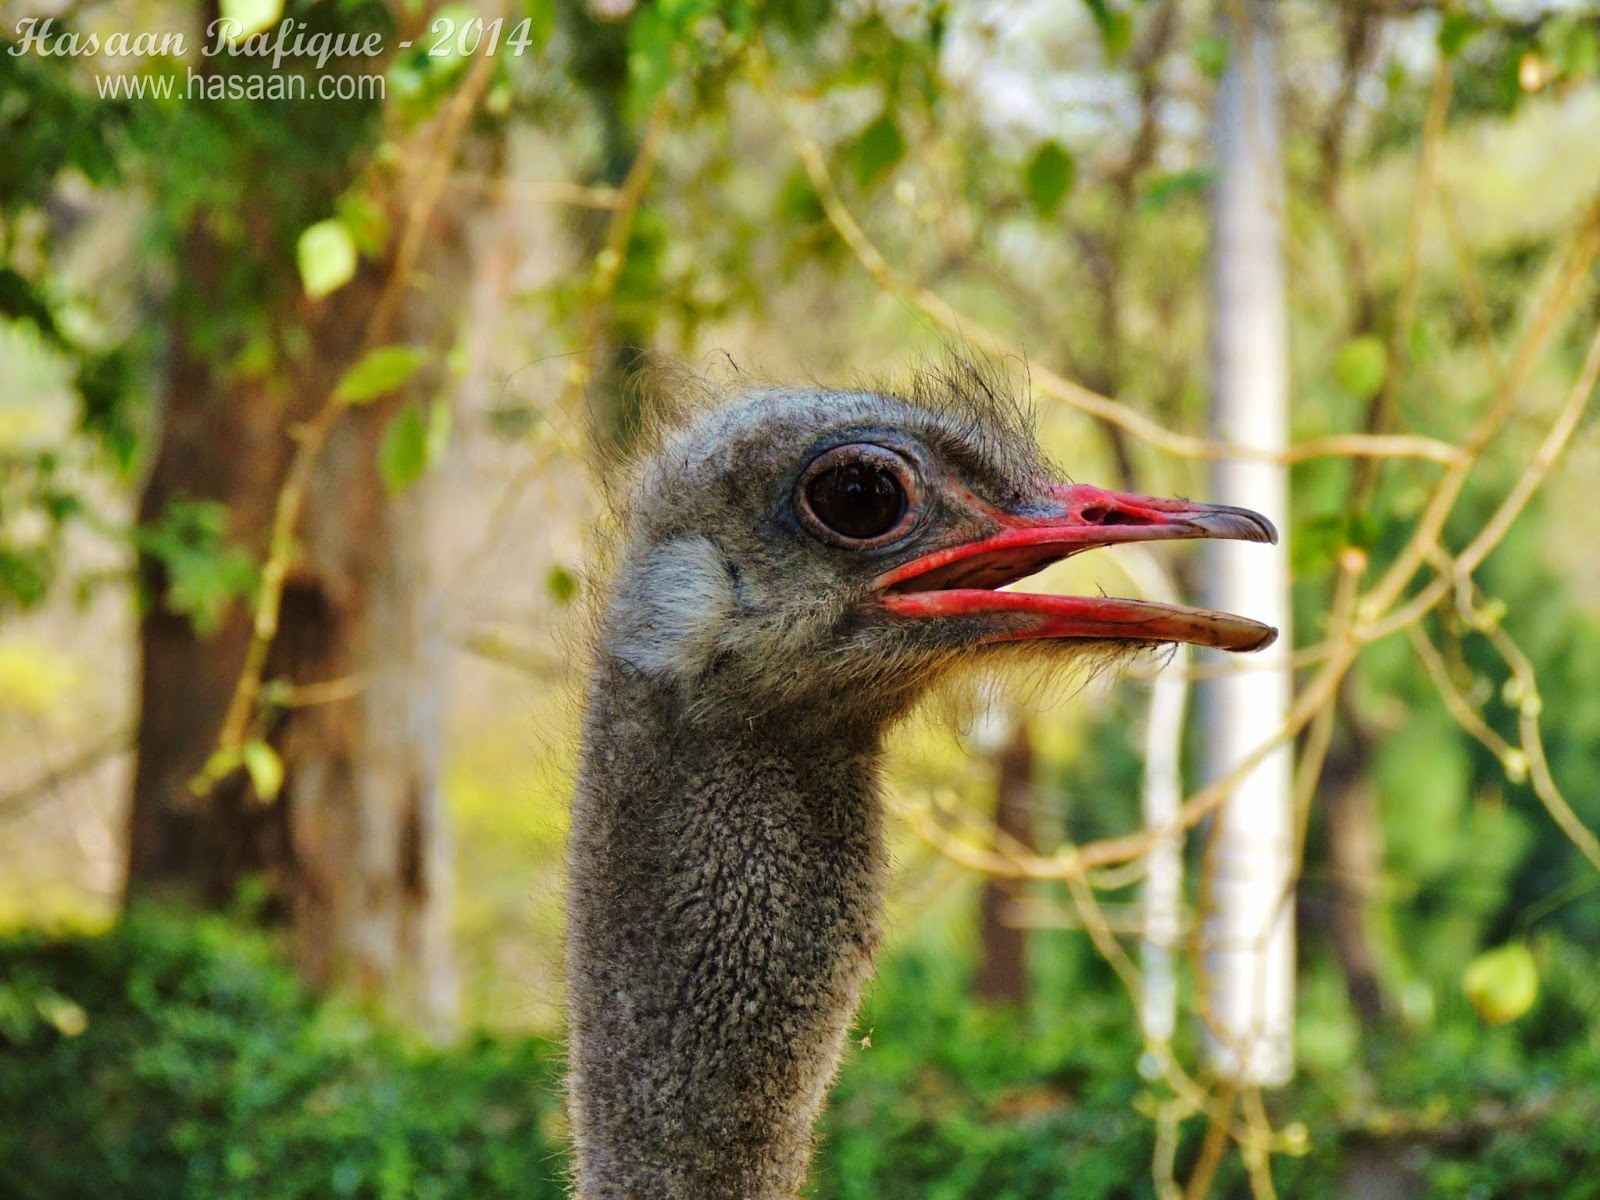 An ostrich closeup shot.